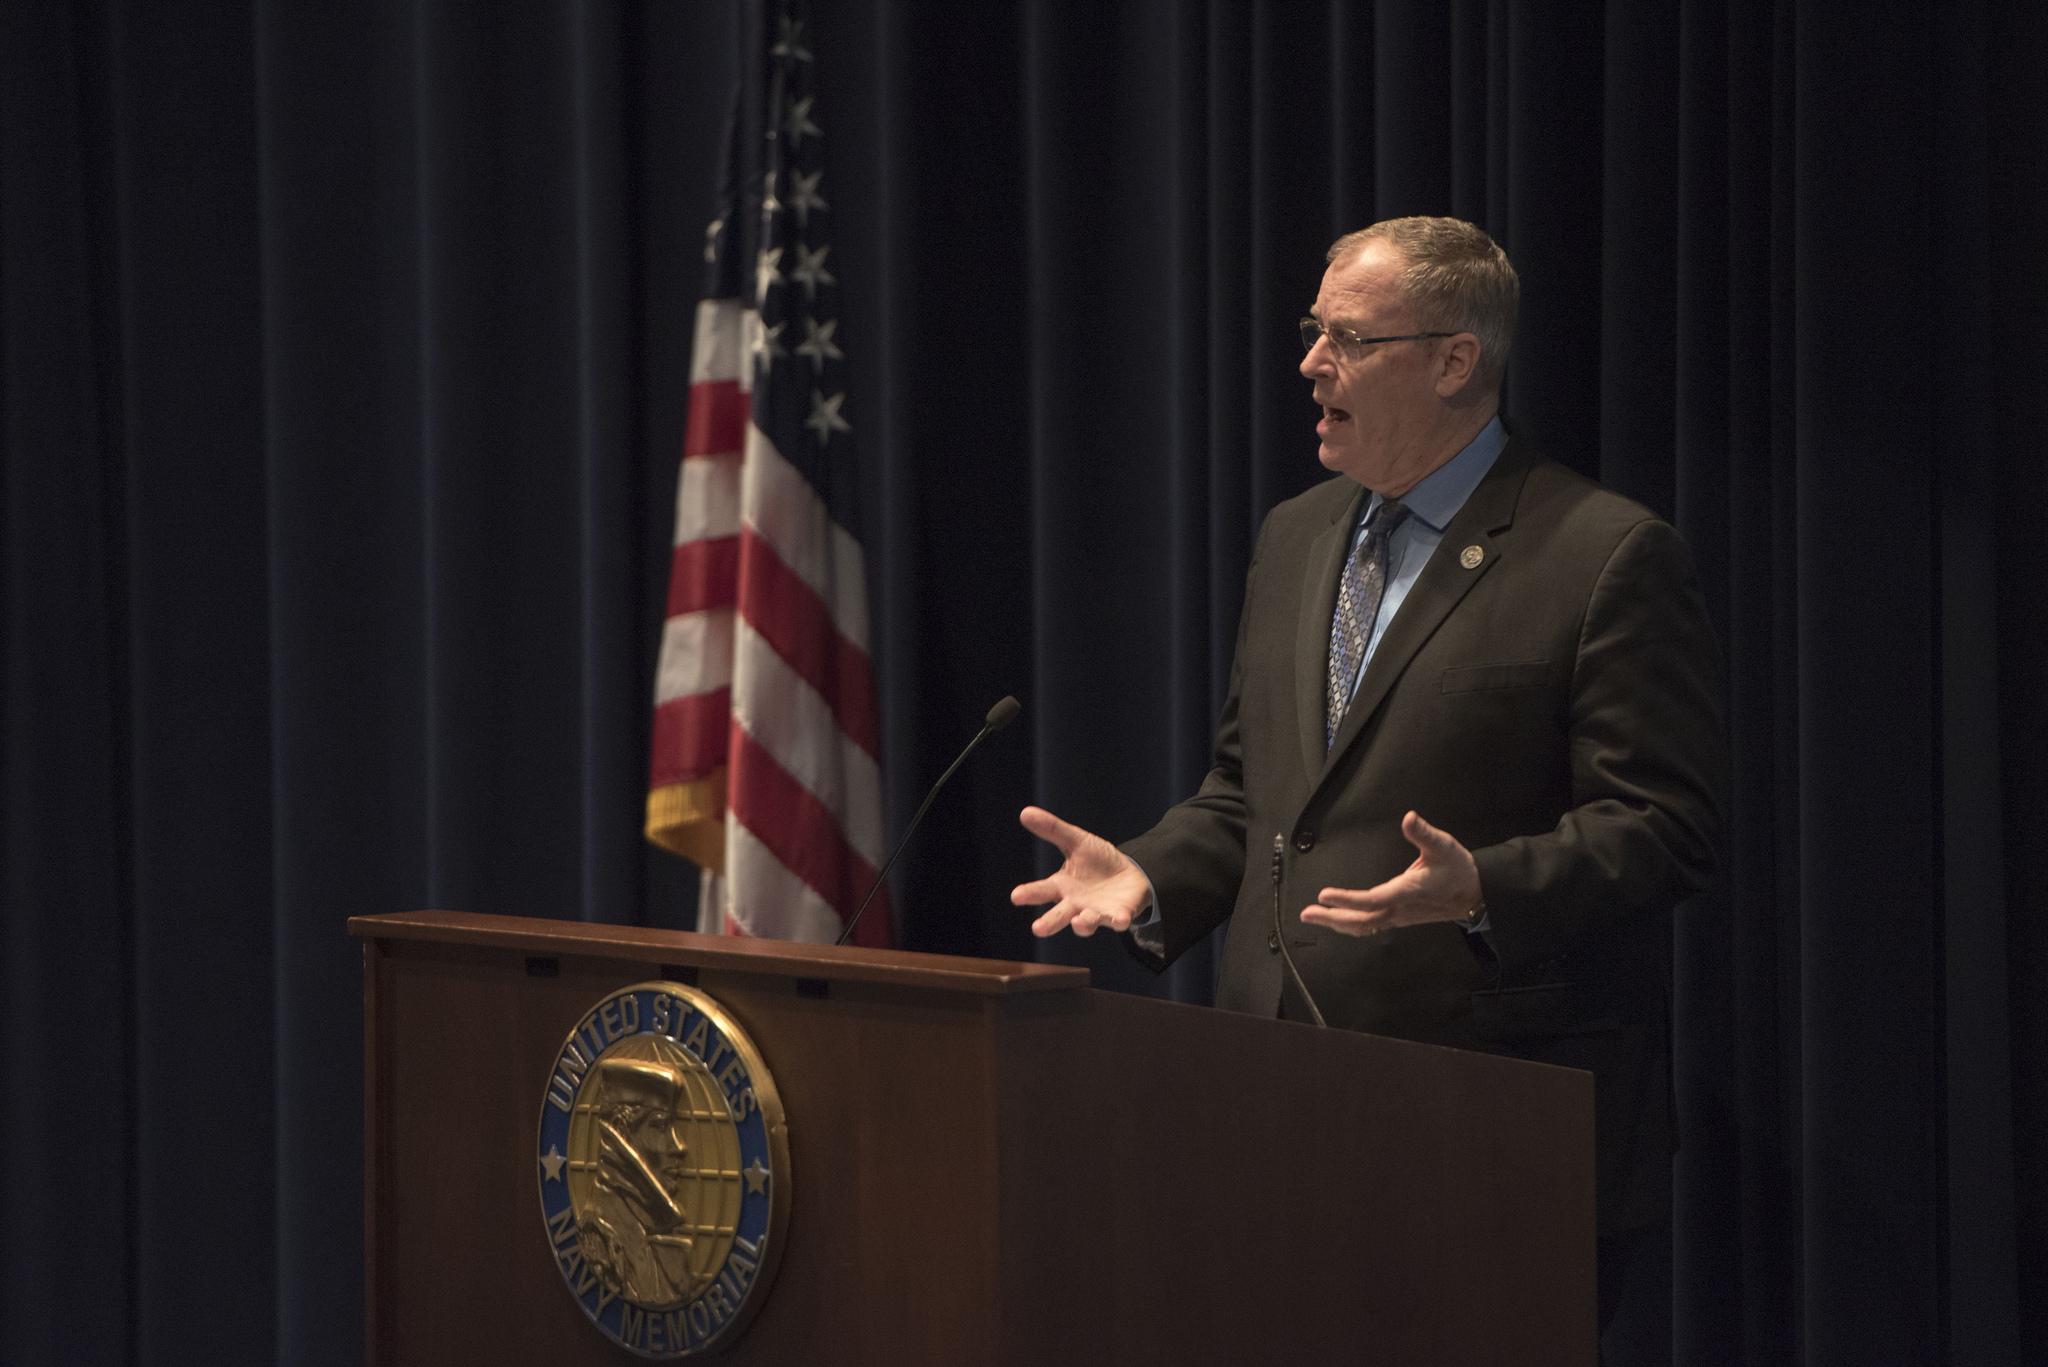 Deputy Secretary of Defense Bob Work speaks during the Future Strategy Forum 2016 at the Arleigh Burke Theater in Washington, D.C., Dec. 5, 2016. DoD Photo